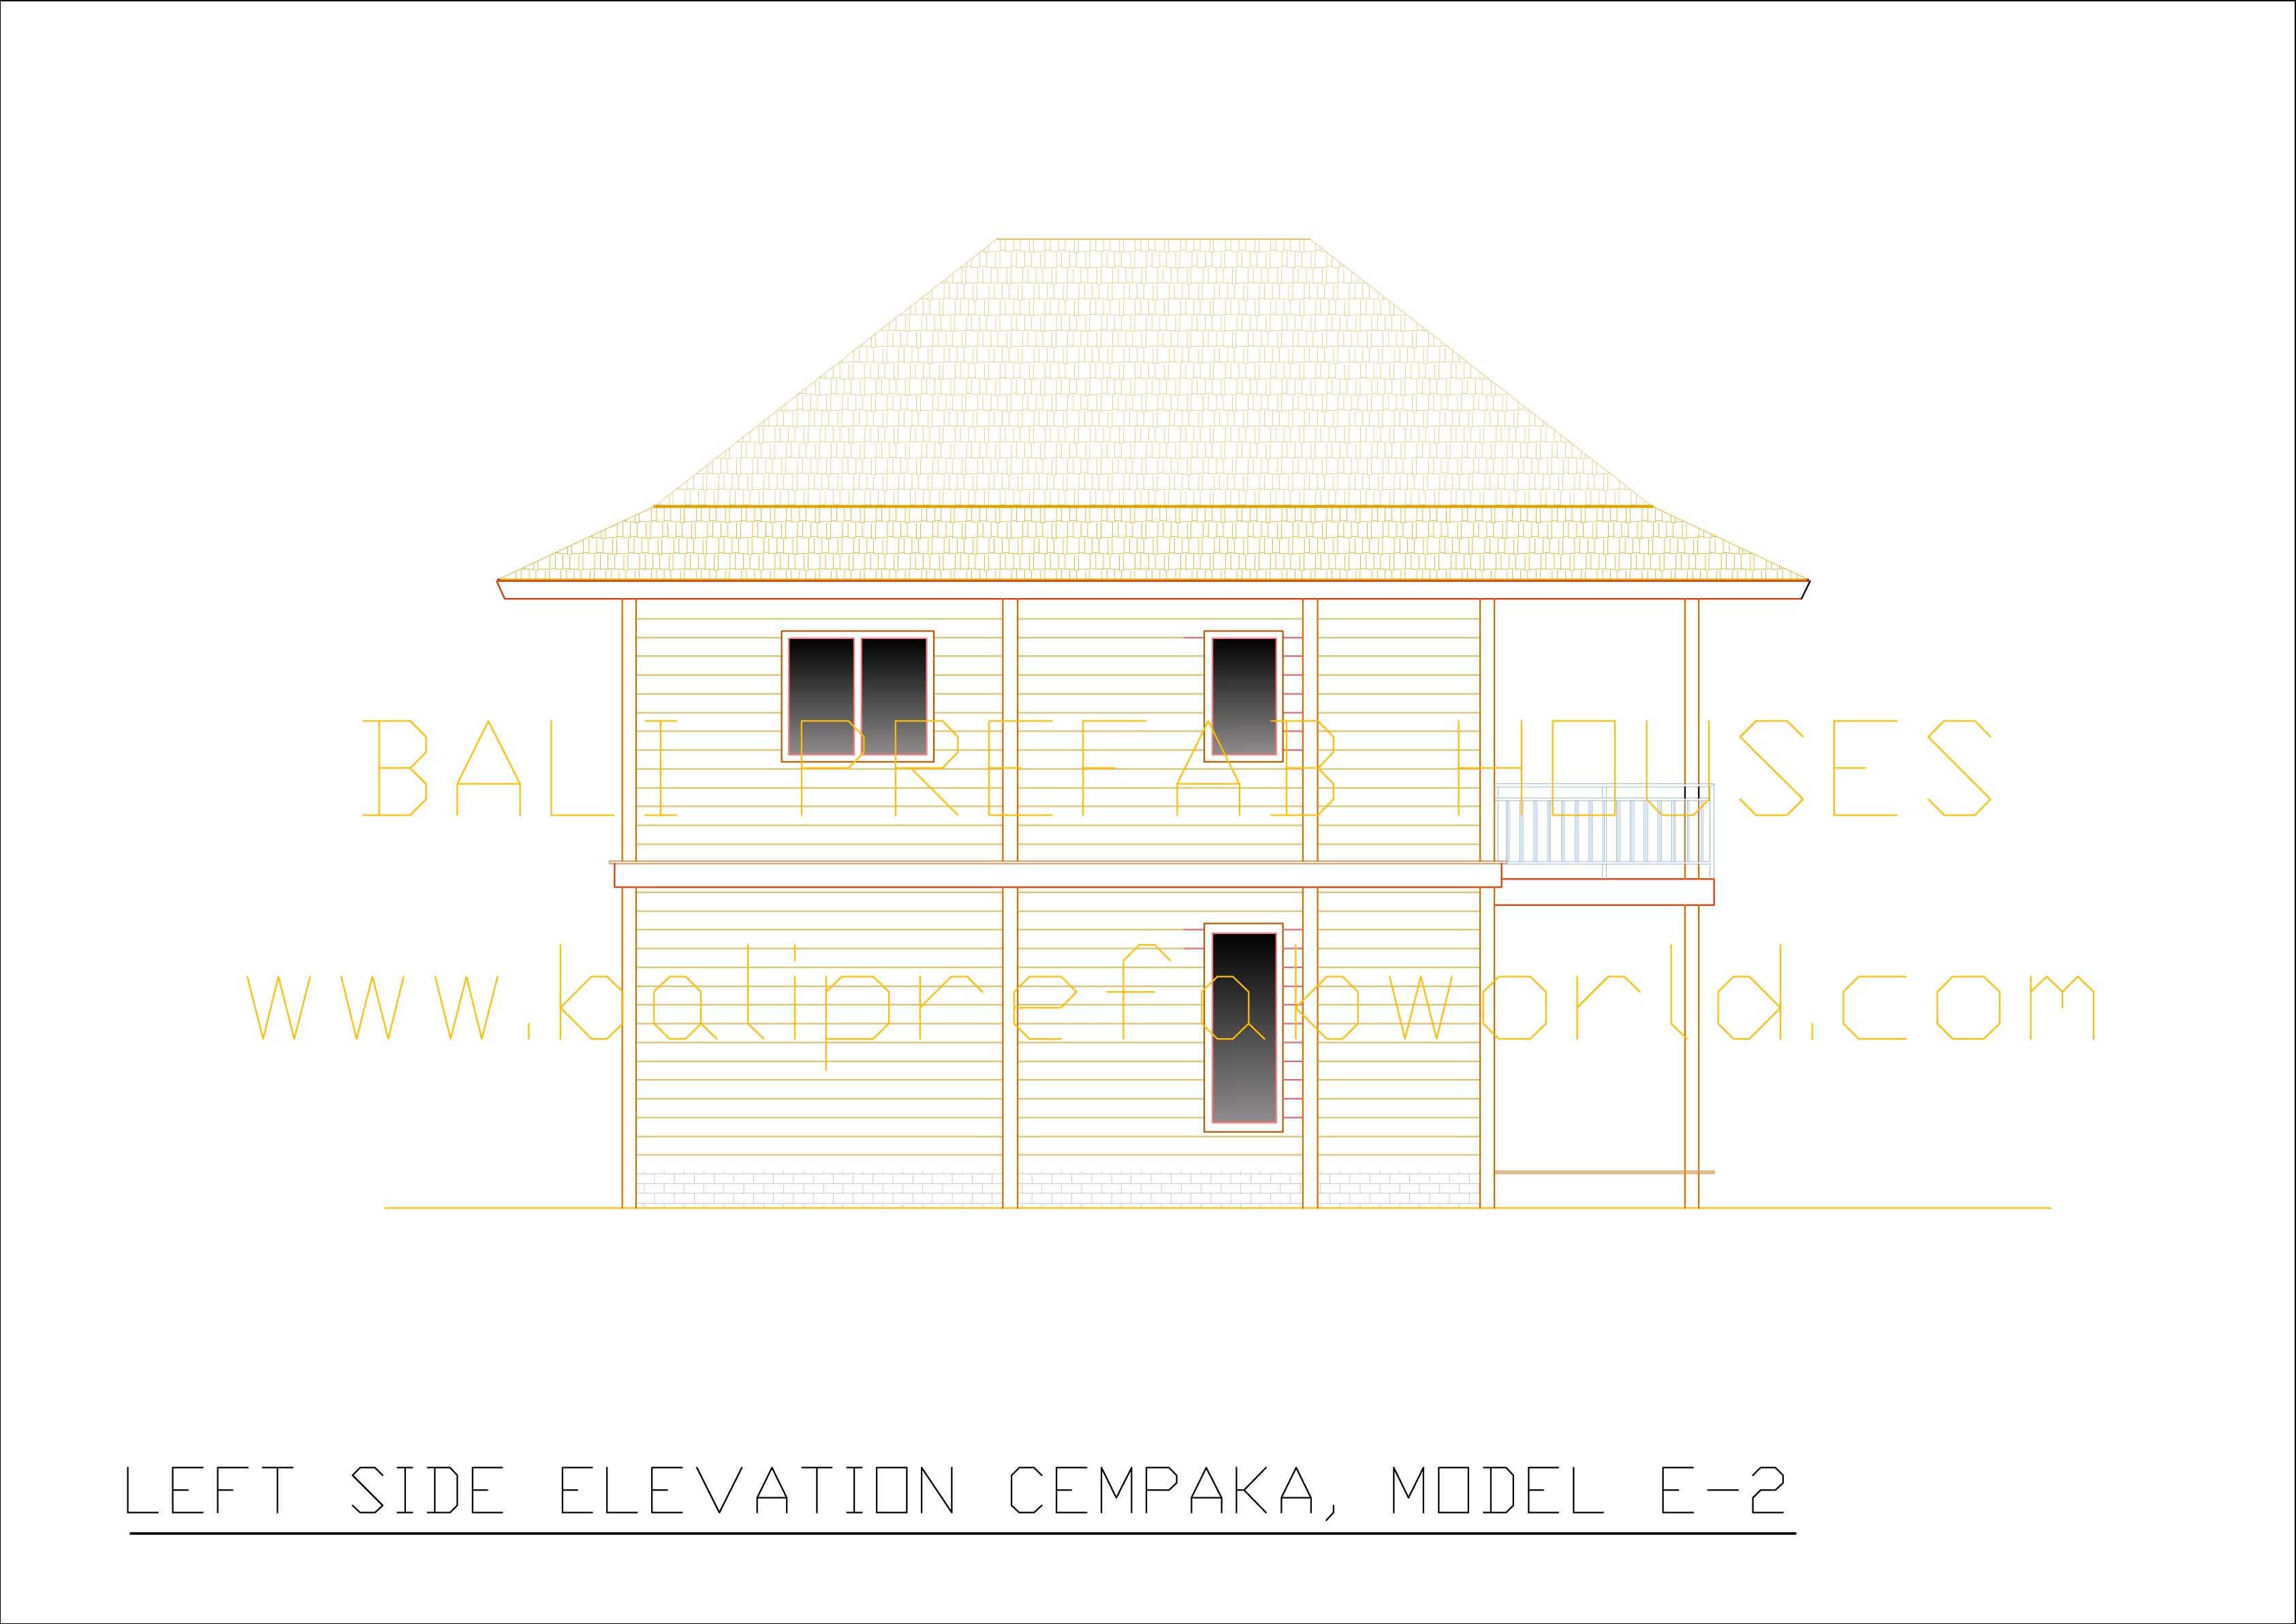 Cempaka left side elevation